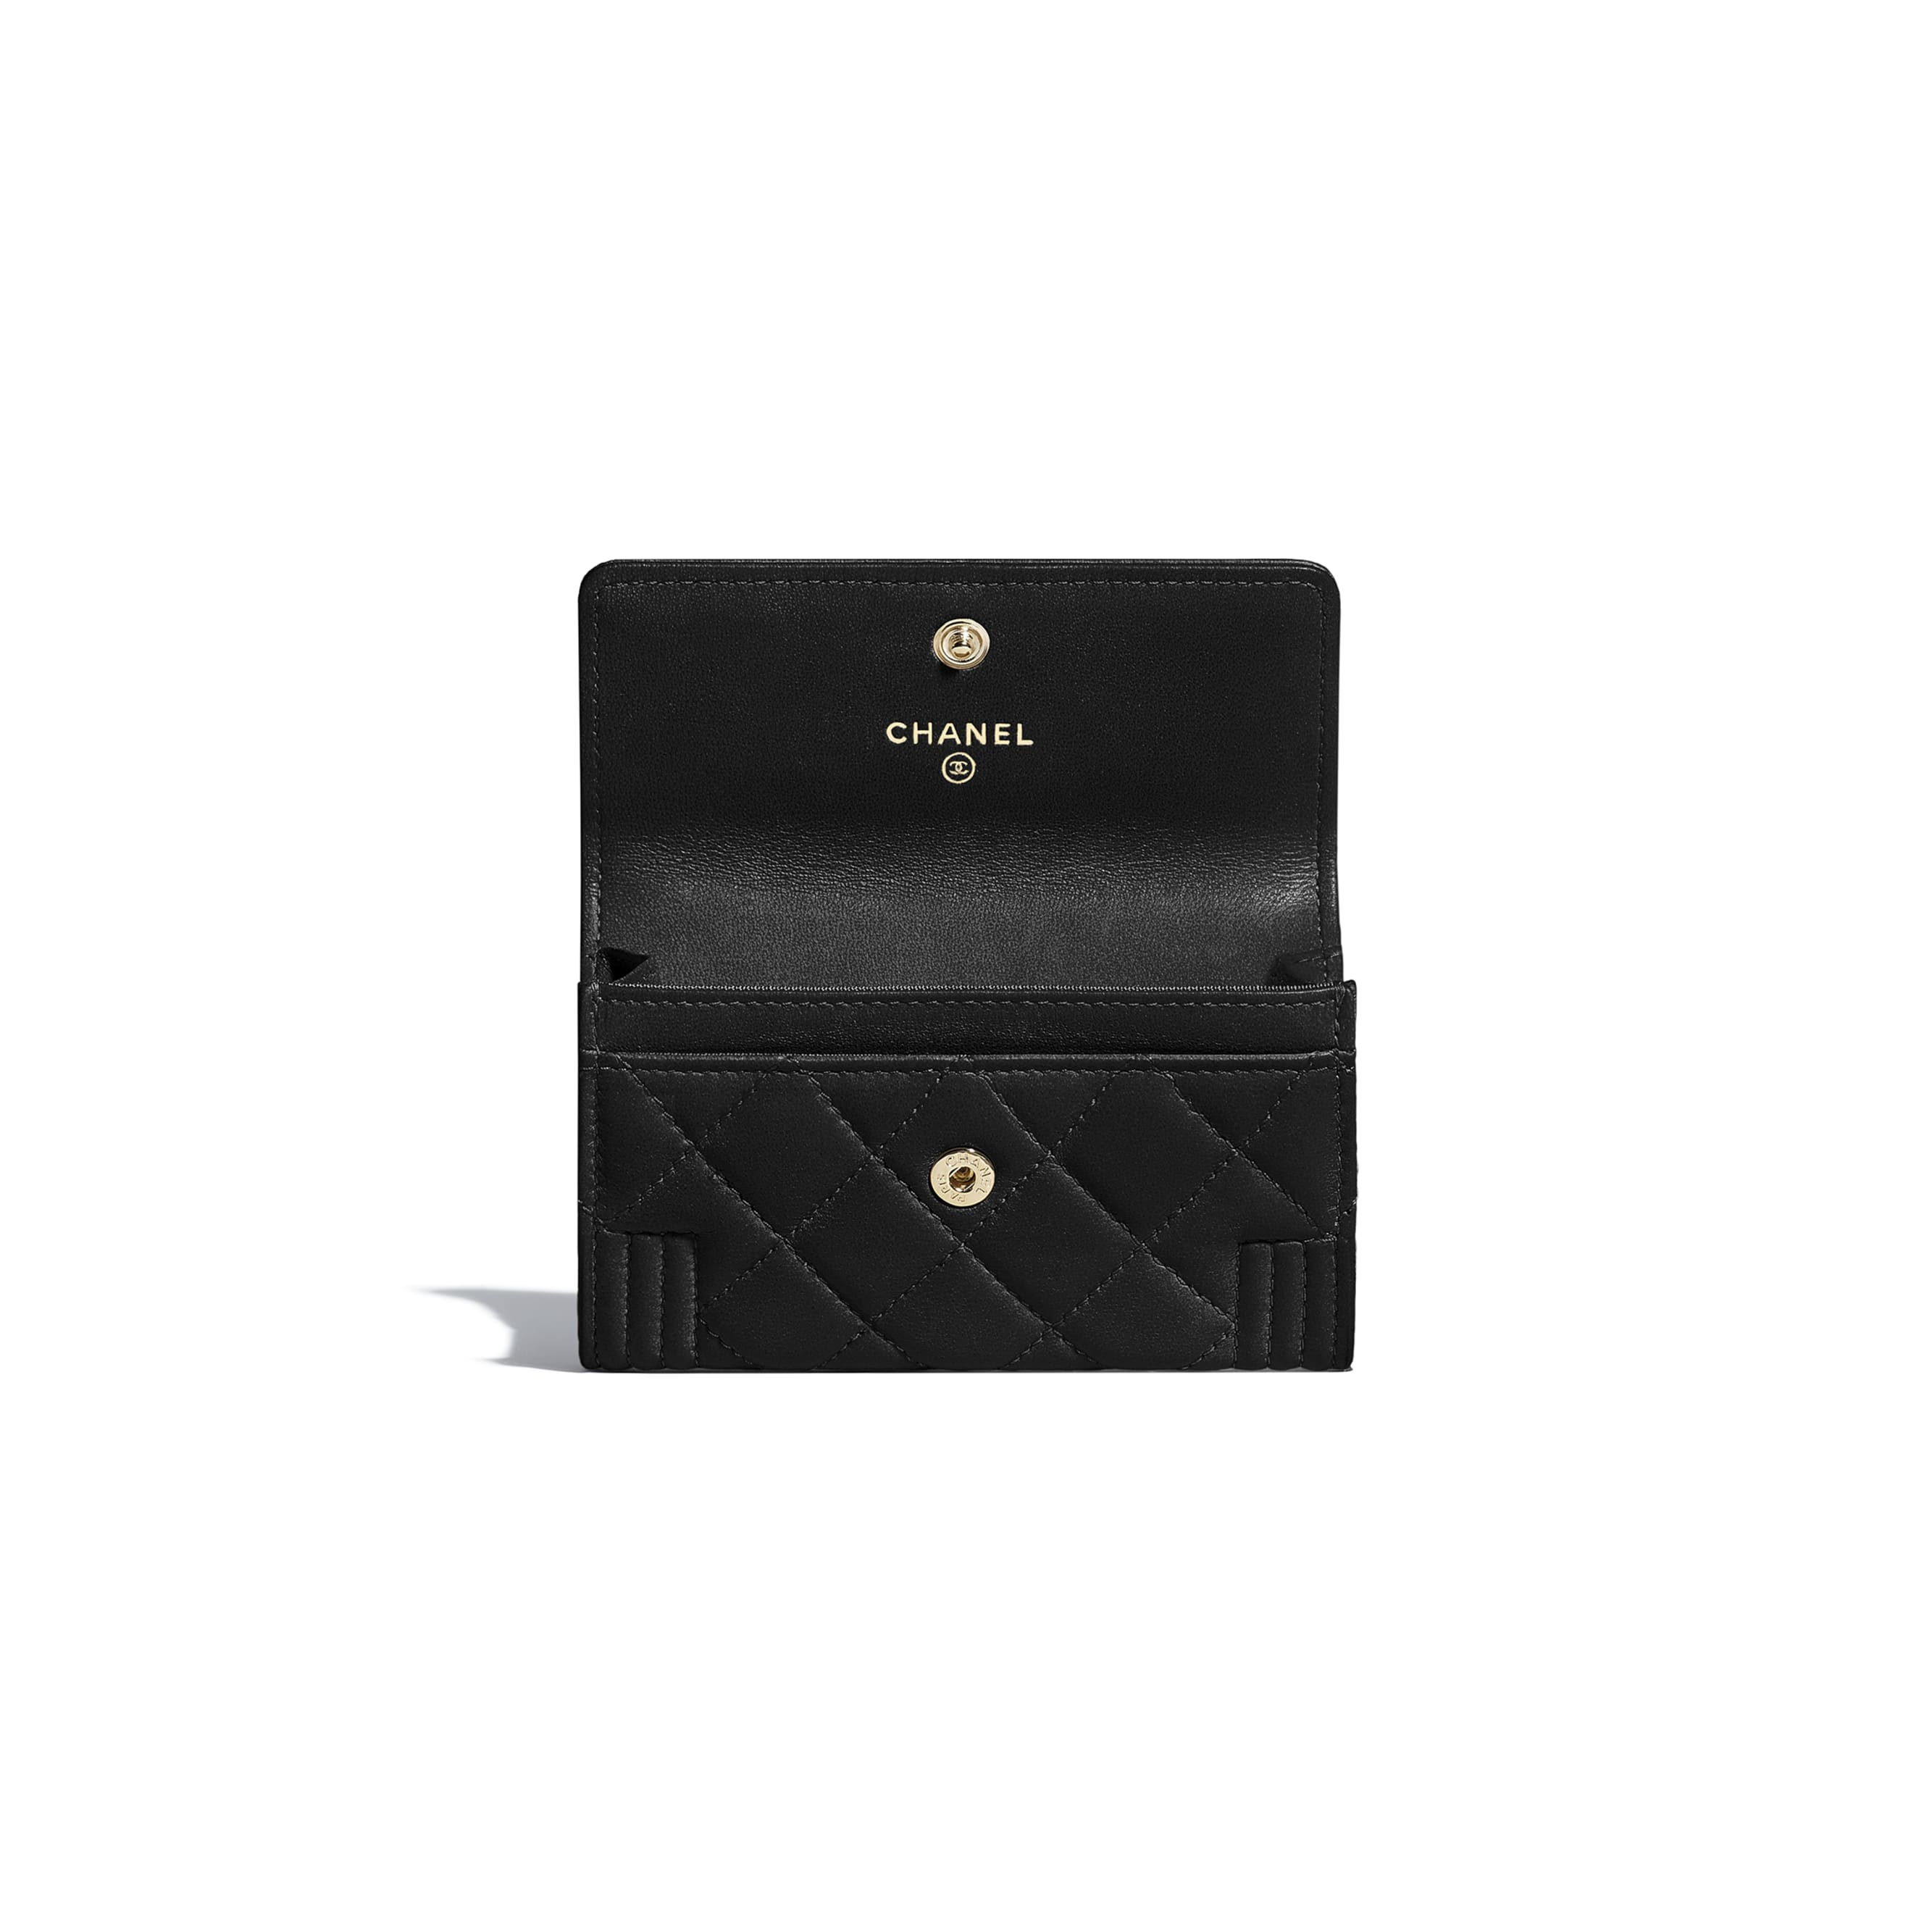 BOY CHANEL Flap Card Holder - Black - Lambskin - CHANEL - Other view - see standard sized version